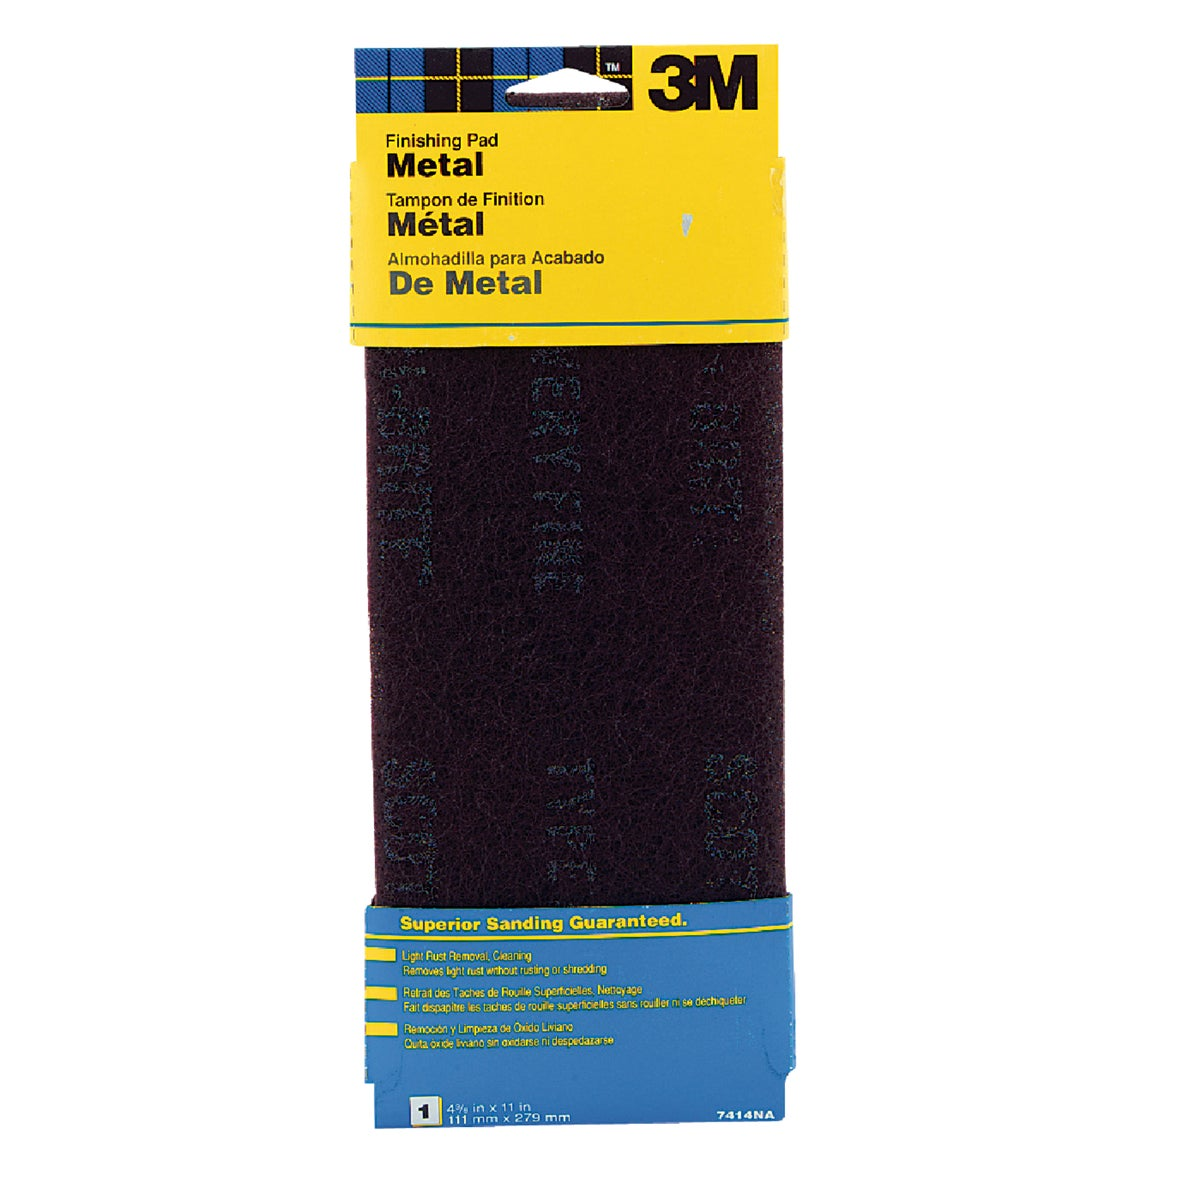 METAL FINISHING PAD - 7414 by 3m Co